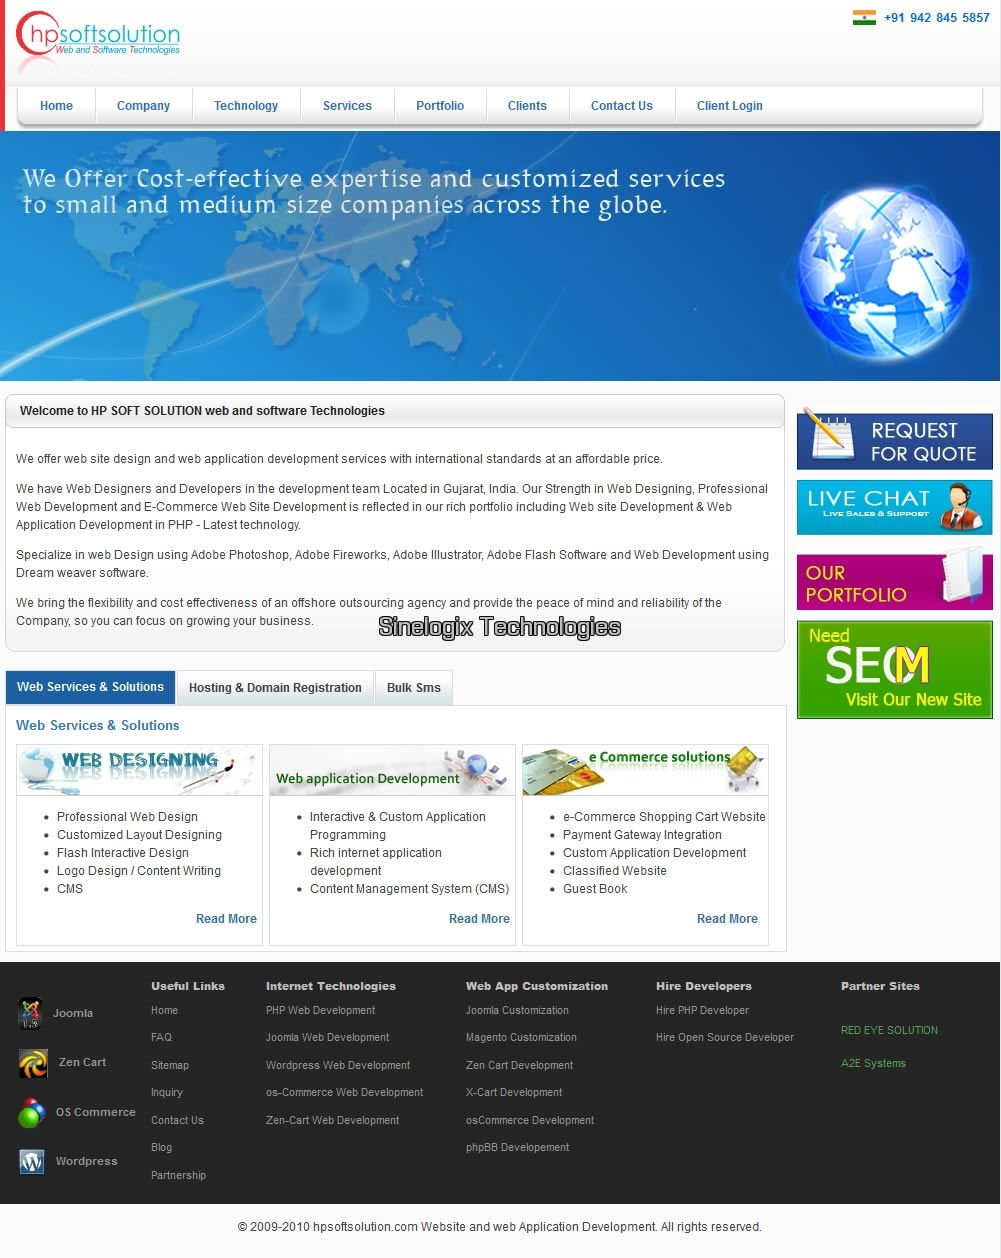 Our Team We Have A Committed Team Of Professionals With Experience In Variety Of Tools And P Latest Technology Trends Technology Trends Application Development